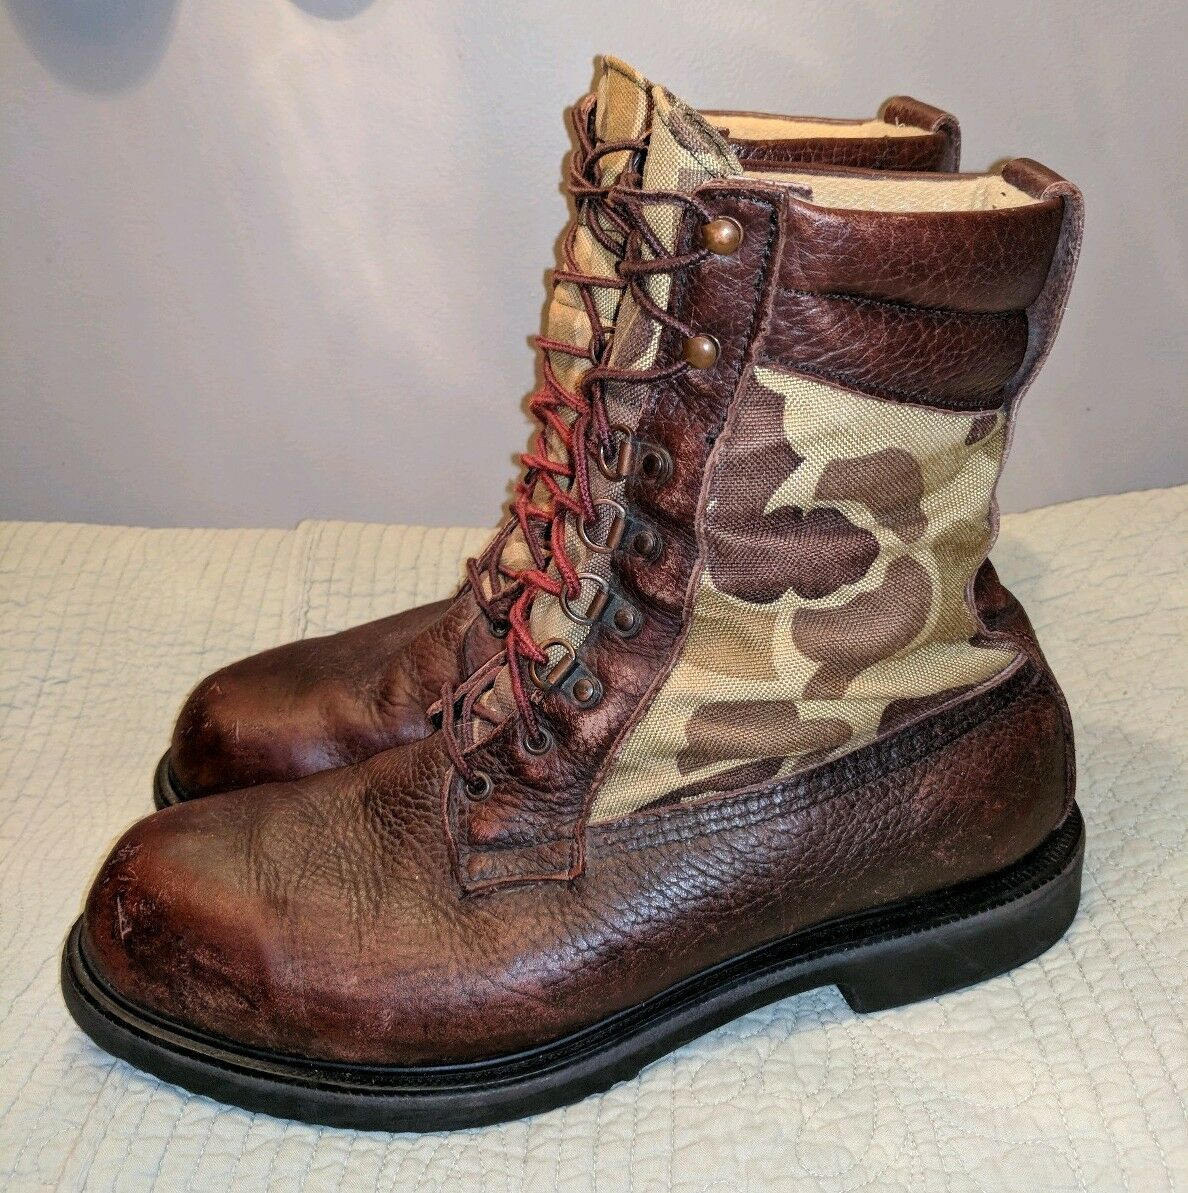 RARE VINTAGE RED WING IRISH SETTER CAMO HUNTING WORK BOOTS Uomo 11 M CAMOUFLAGE